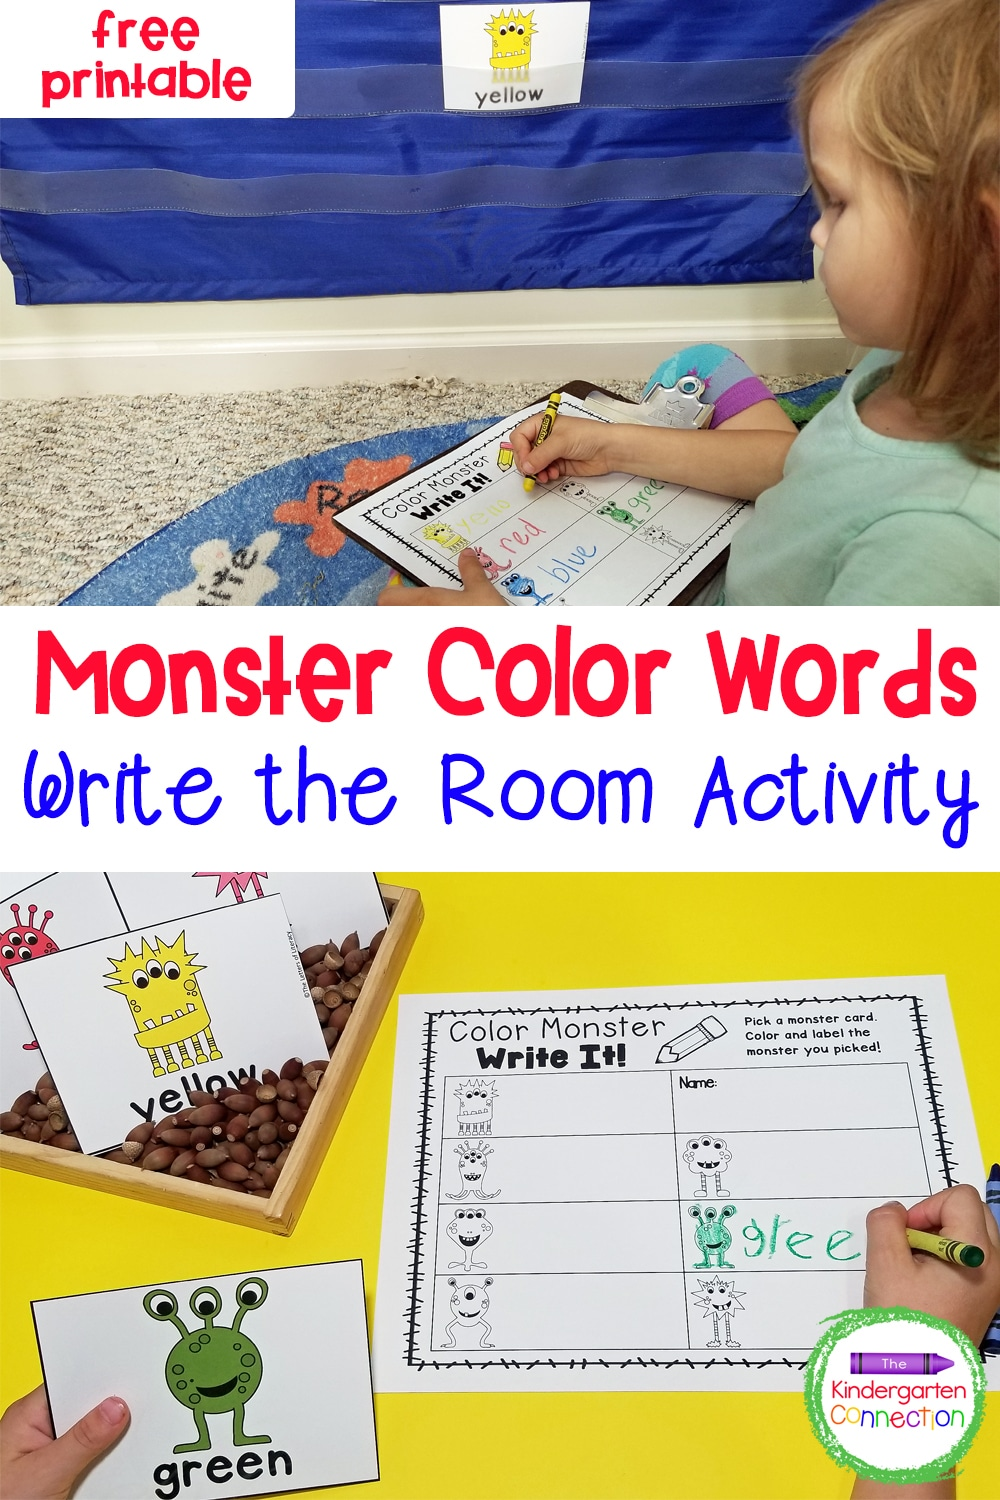 This fun and free Write the Room Monster Color Words activity makes learning color words exciting and hands-on in Pre-K & Kindergarten!